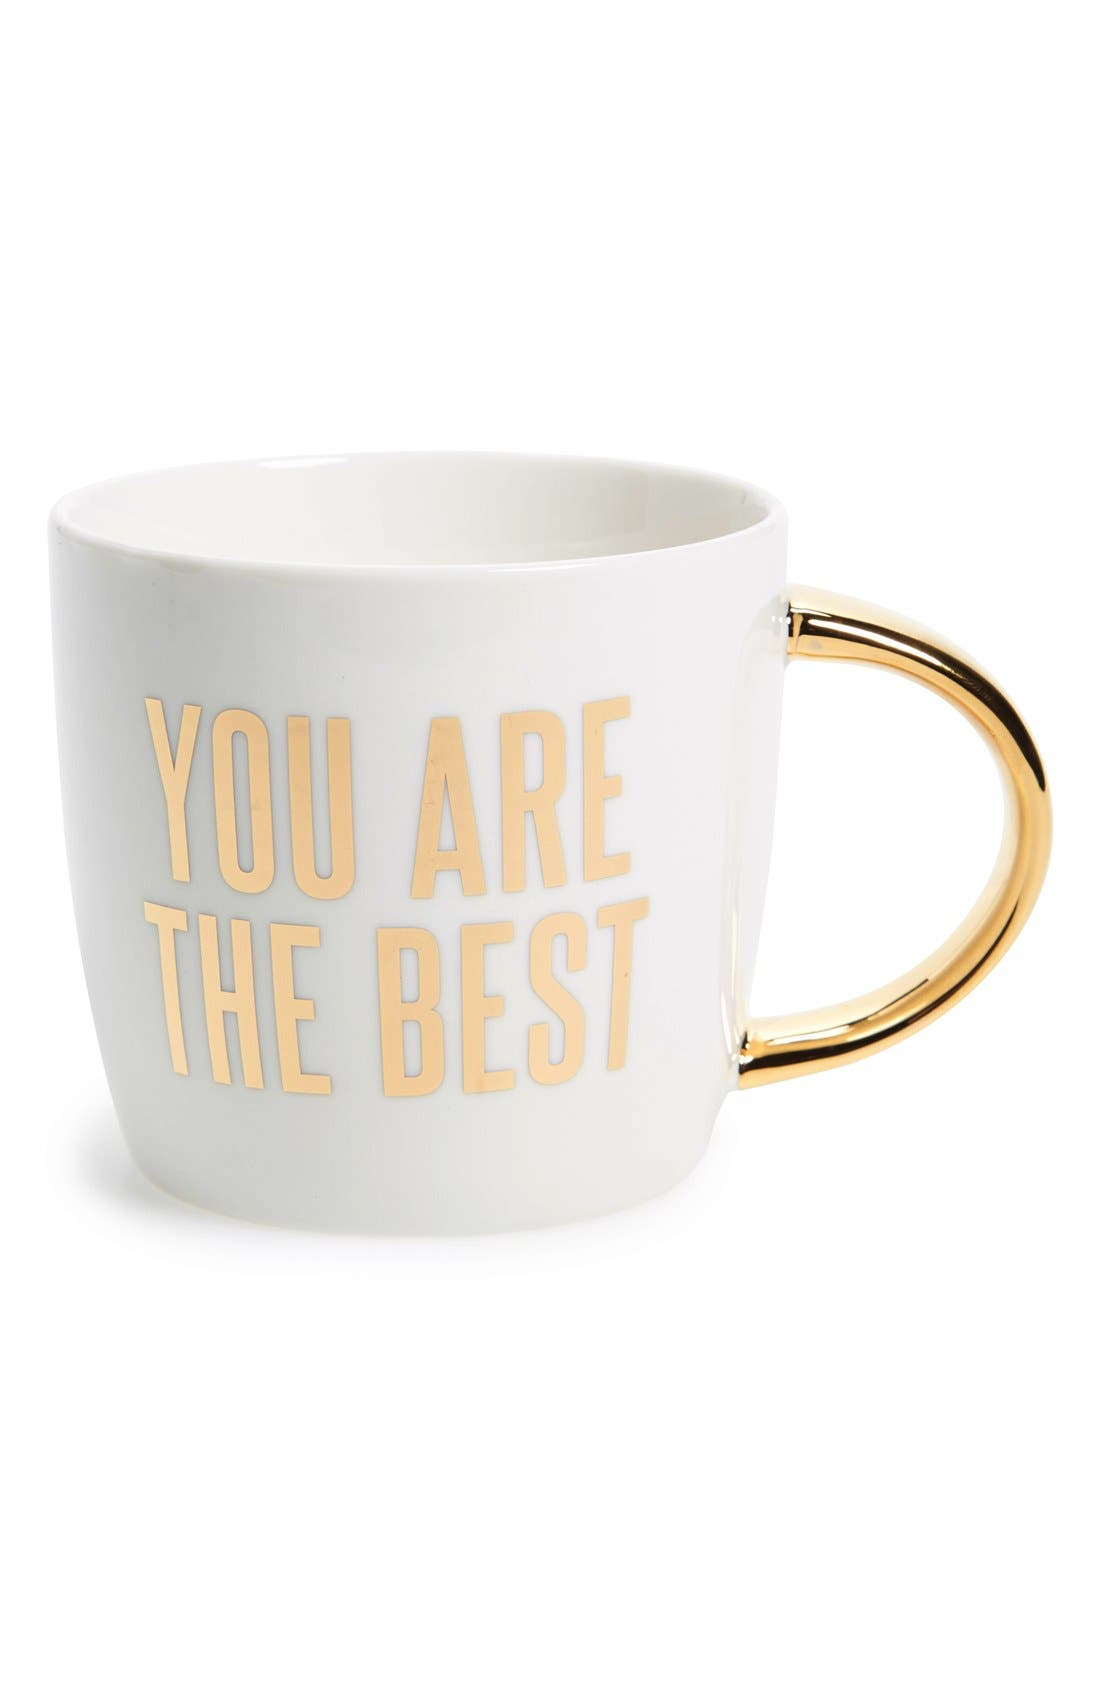 'You Are the Best' Ceramic Mug,                             Main thumbnail 1, color,                             100